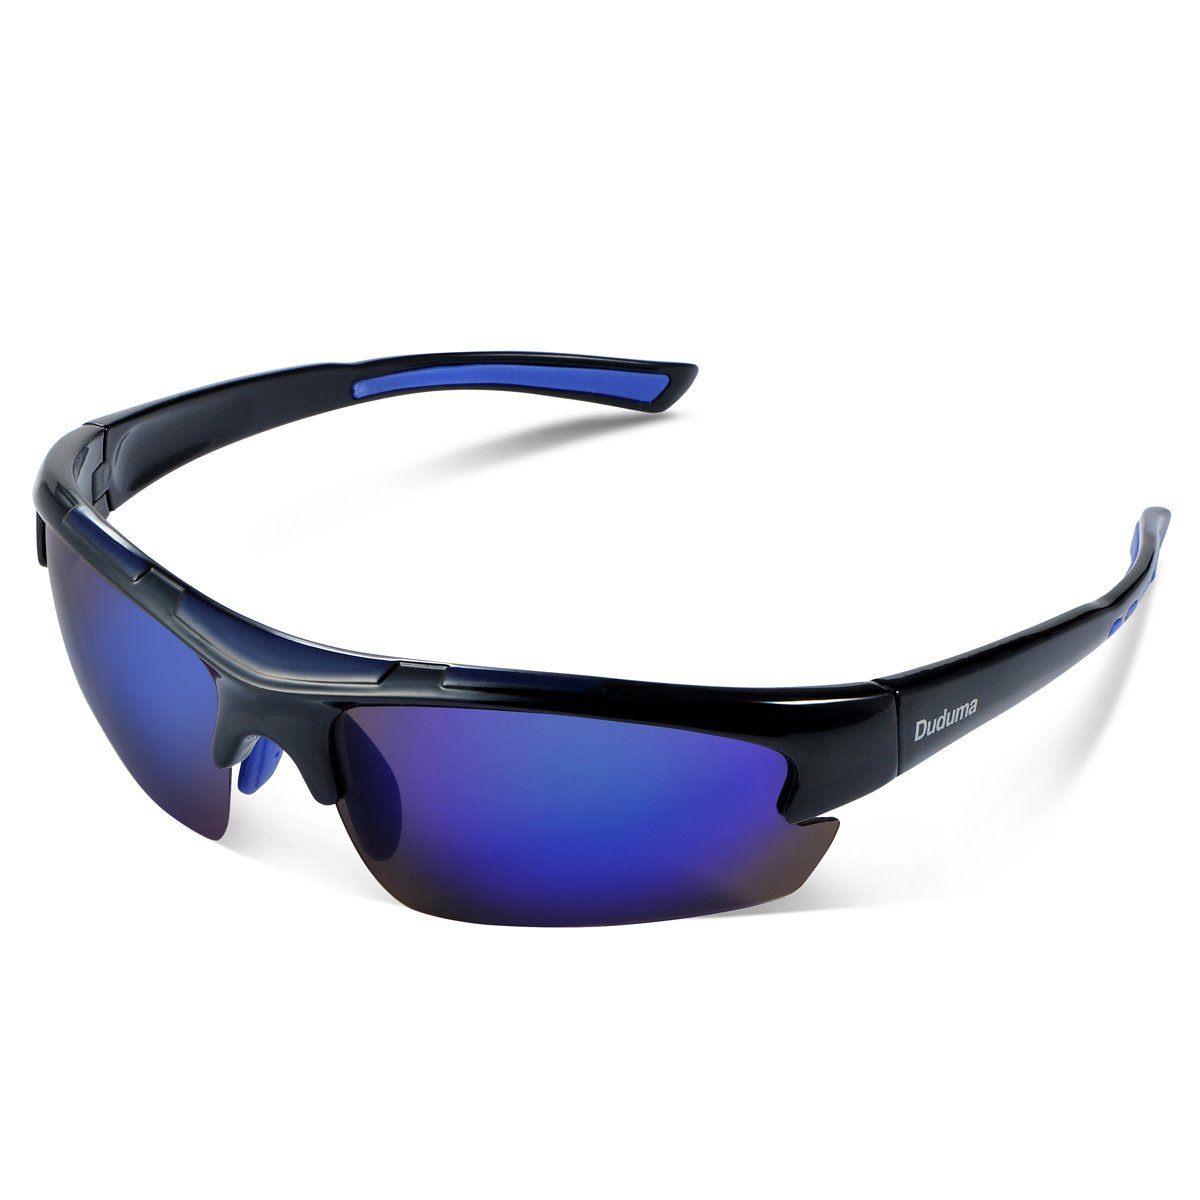 Duduma Polarized Designer Fashion Sports Sunglasses for Baseball Cycling Fishing Golf Tr62 Superlight Frame (black/blue) by Duduma